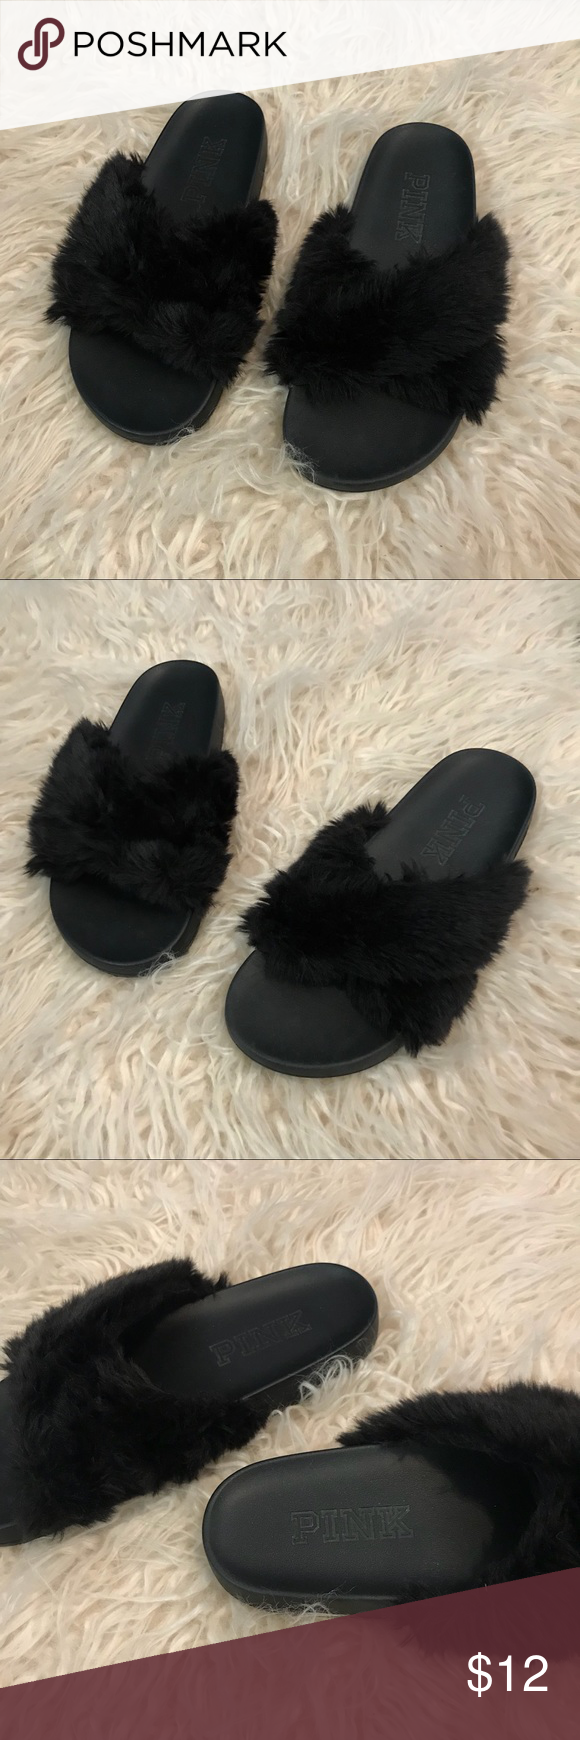 5eb567a3530d Fur Slides ✨ Victoria Secret PINK fur fuzzy slides. Size small fits a 6-7  these are lightly worn no major signs of wear. Still have lots of life in  them.